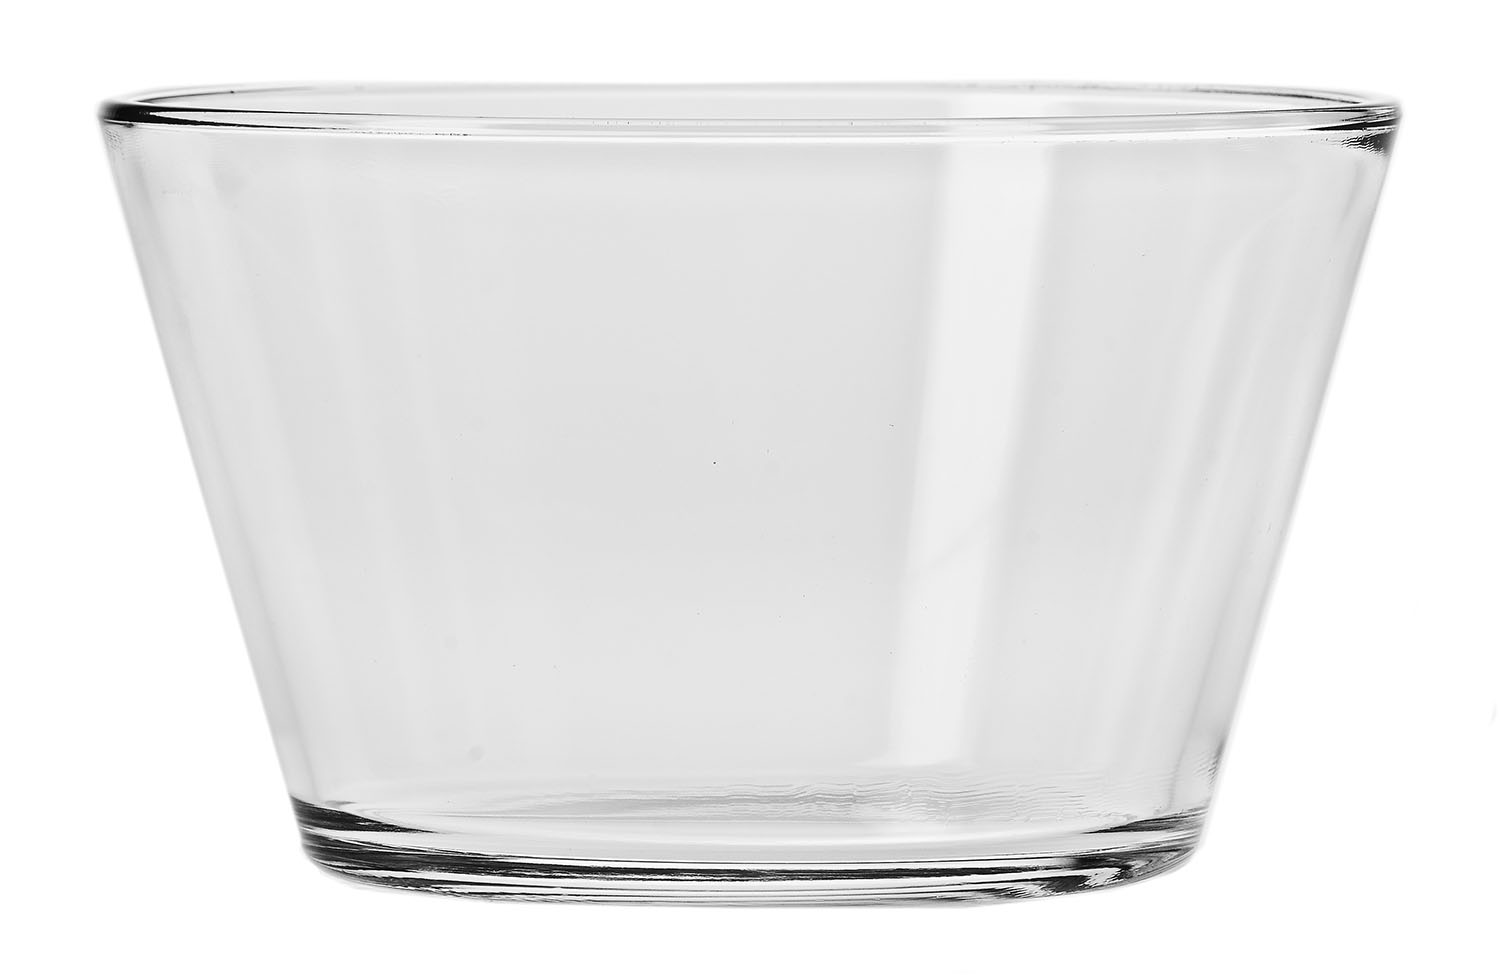 Miska / Salaterka szklana KROSNO BASIC GLASS 1,3 l